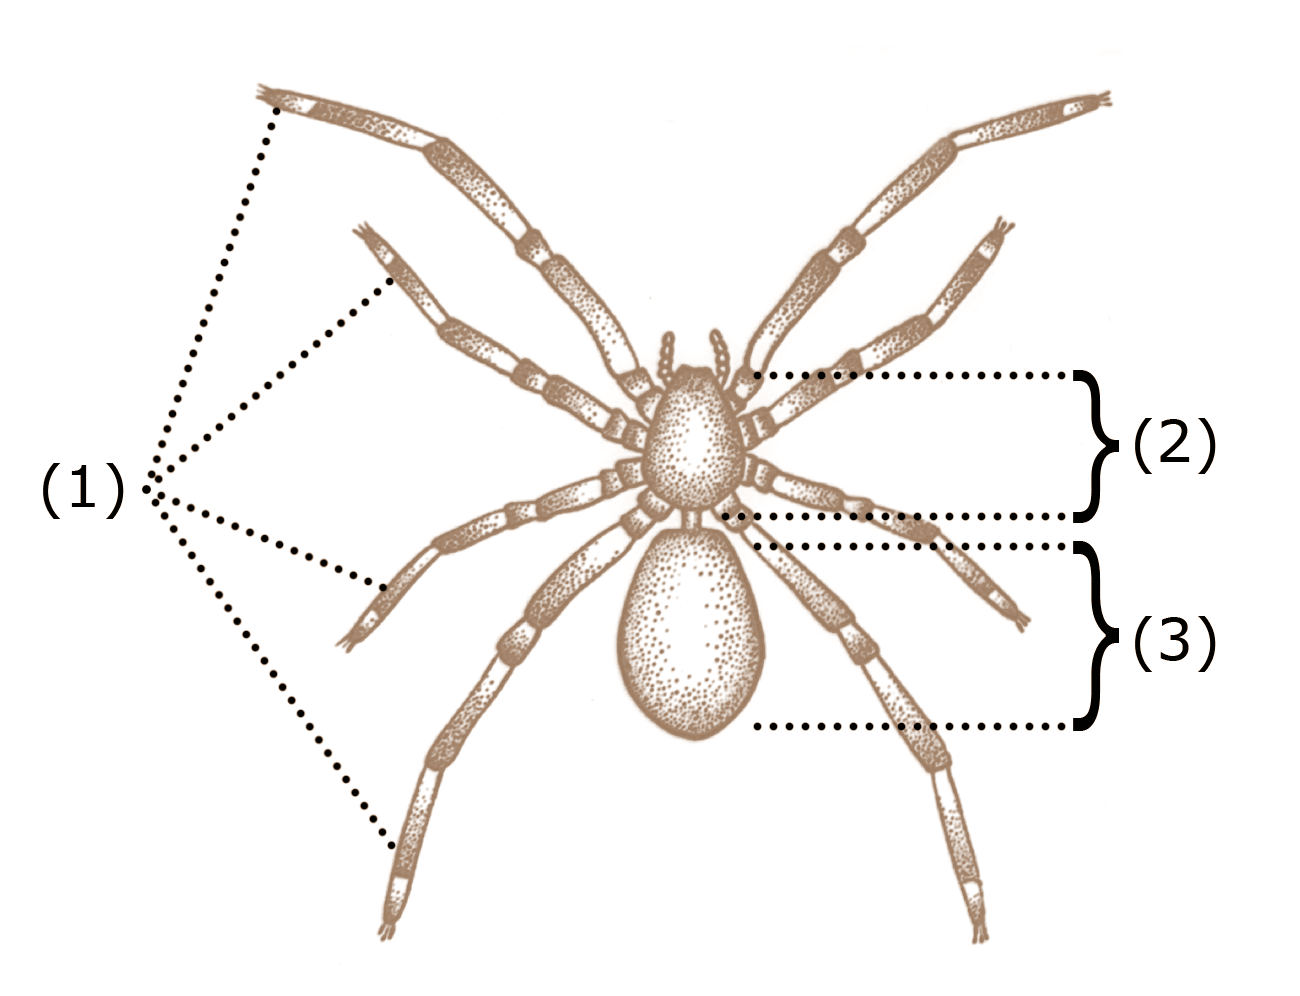 hight resolution of spider anatomy wikipedia spider legs drawing diagram of spider legs